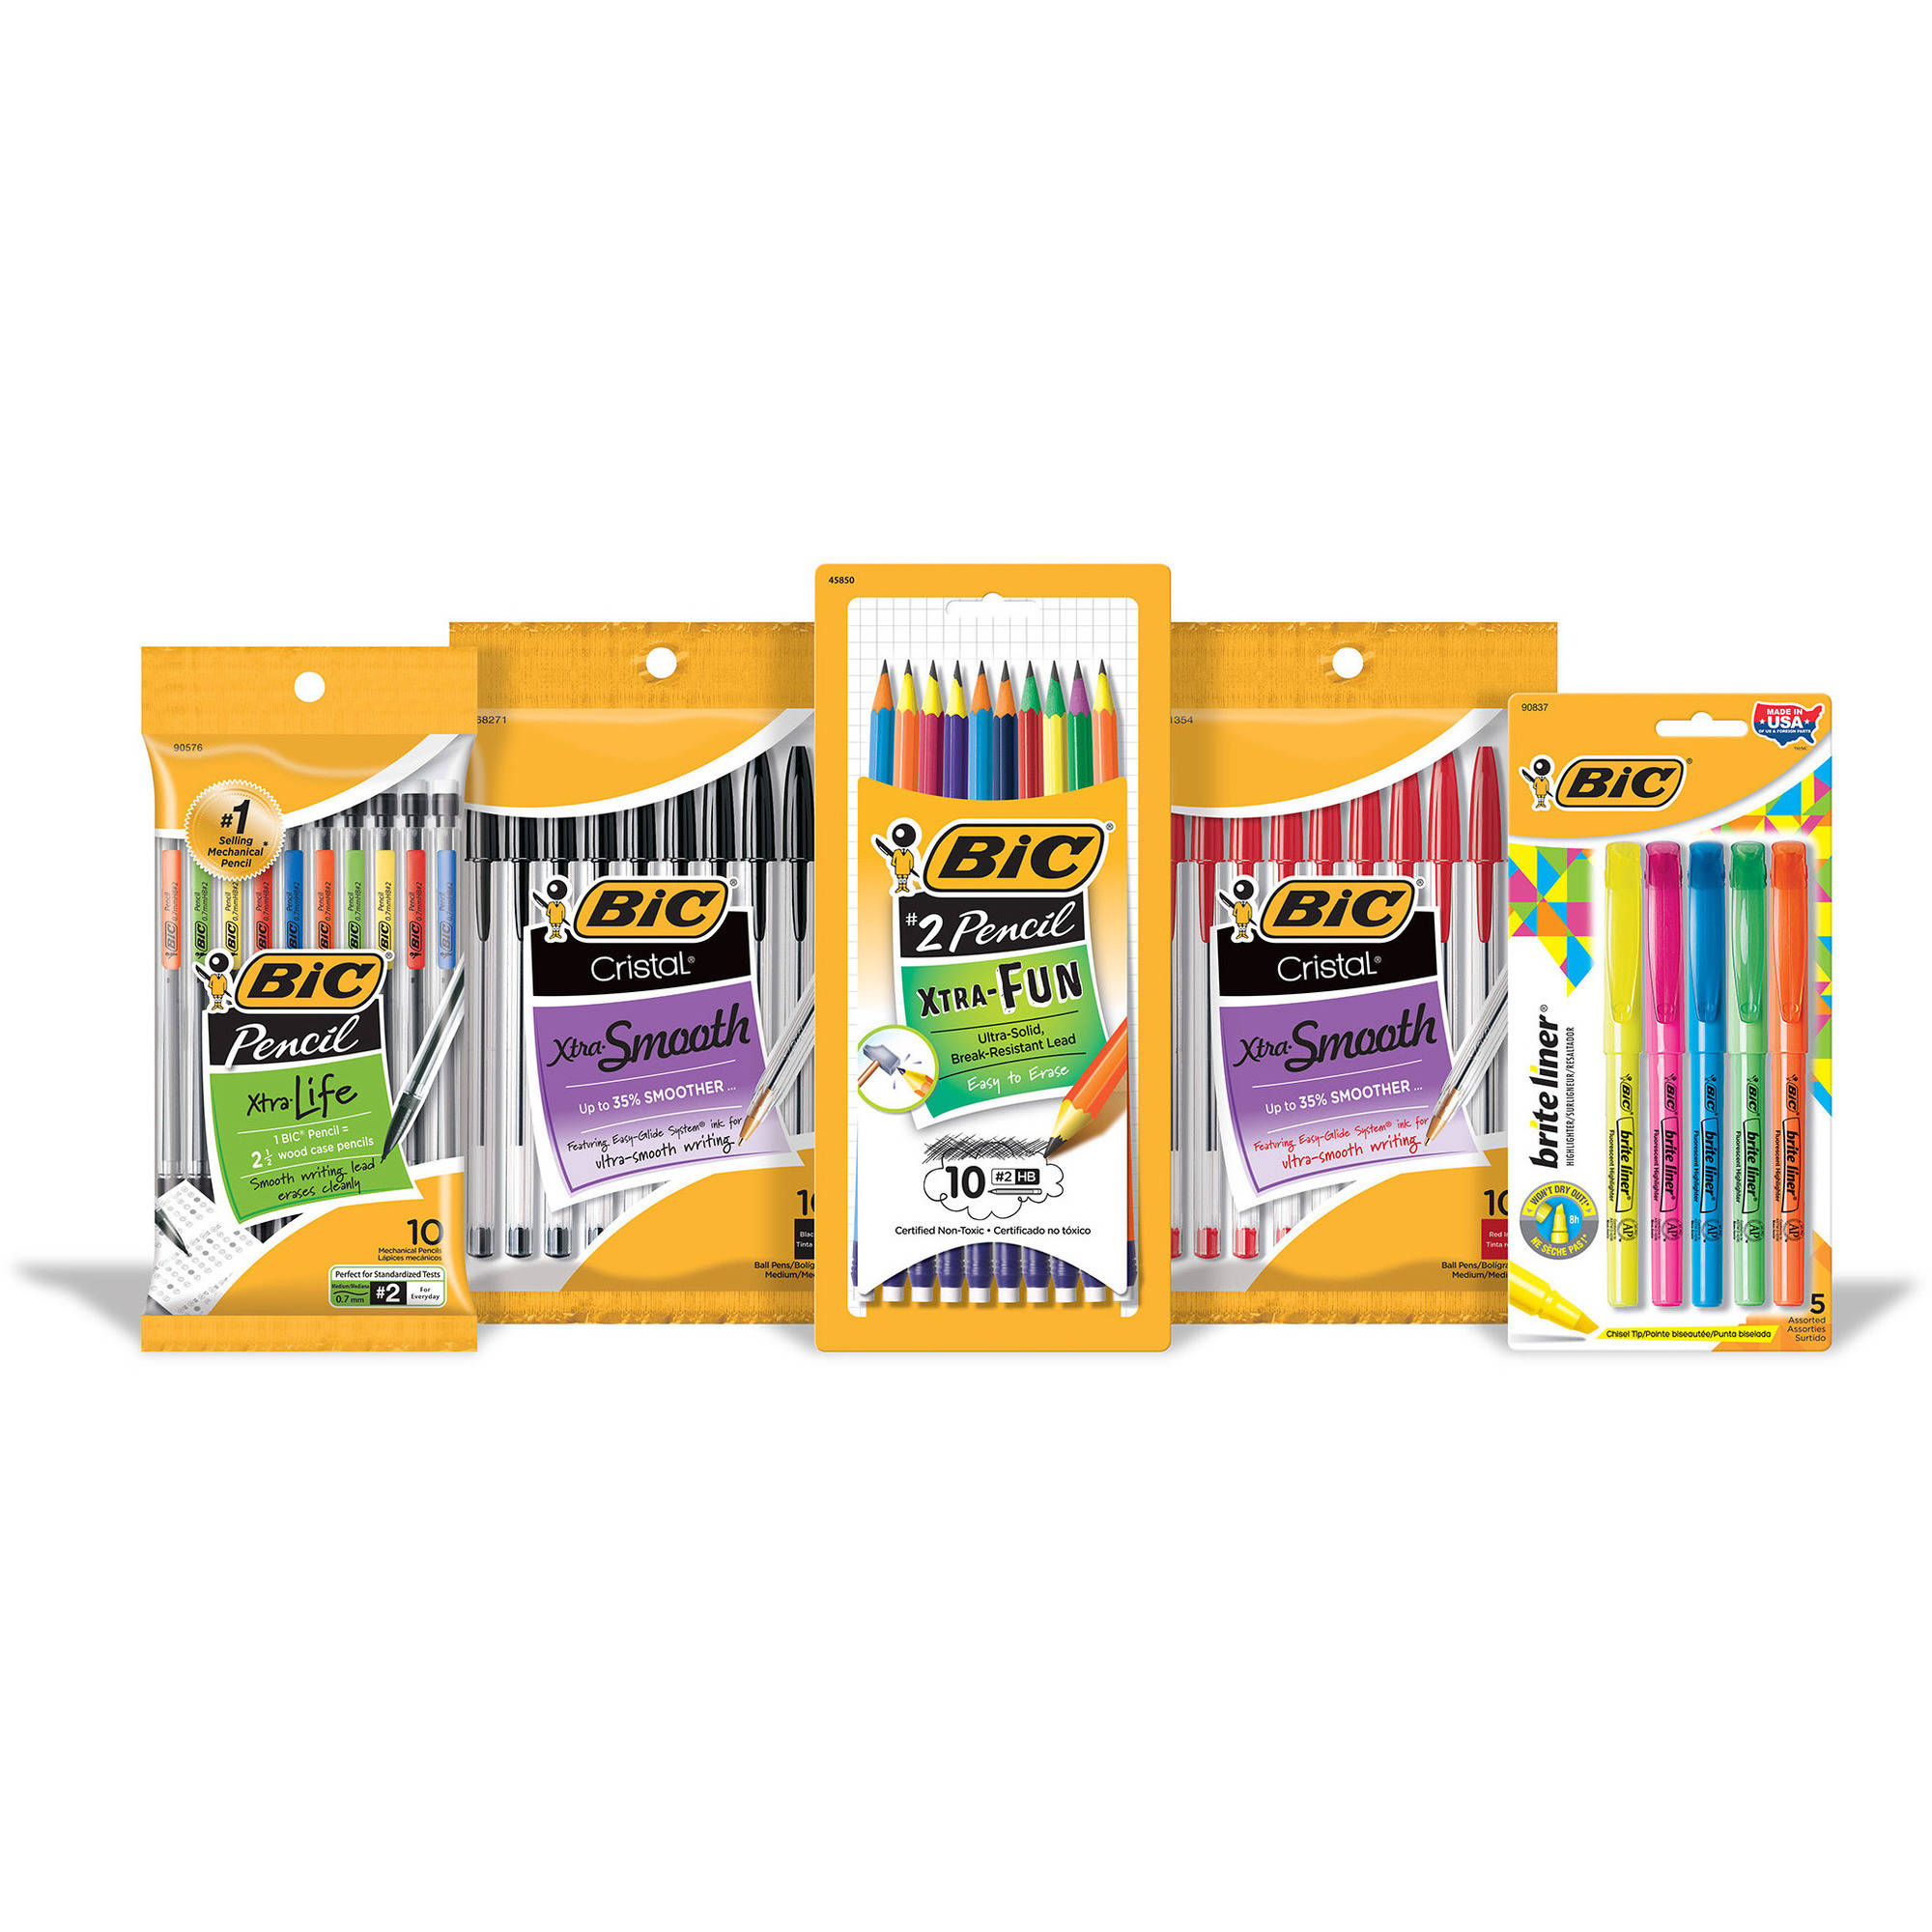 BIC Writing Bundle with Pens, Pencils and Highlighters, 45 Pieces